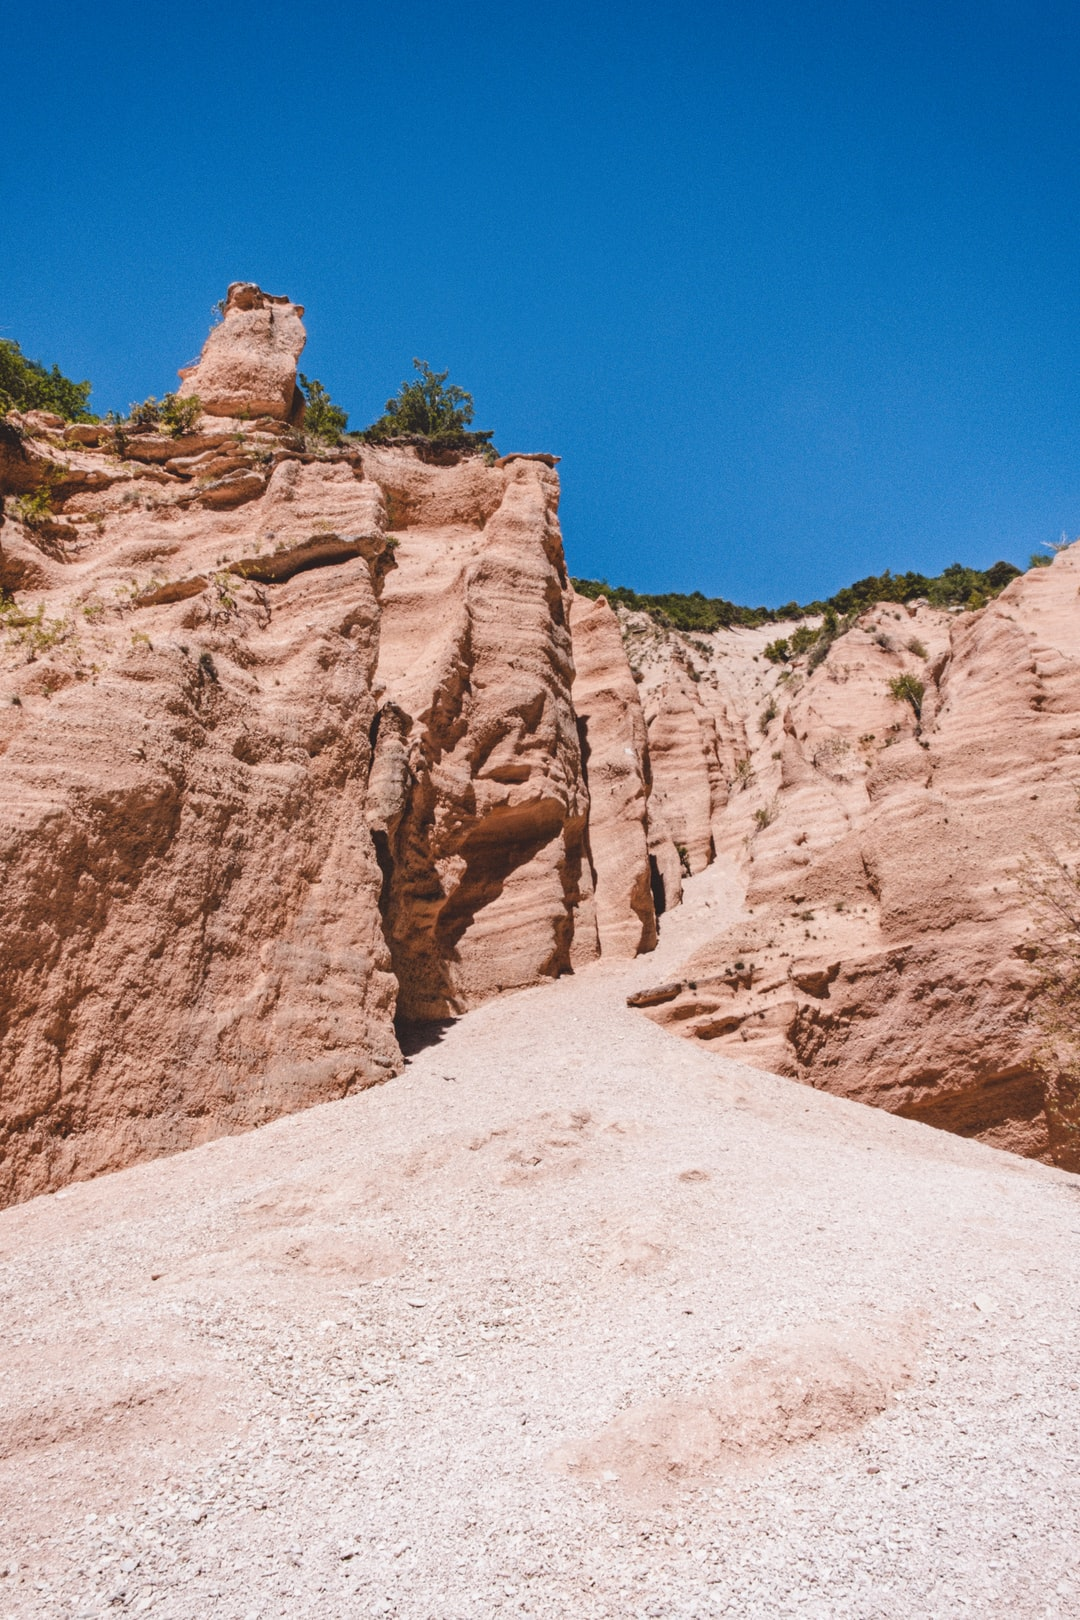 Lame Rosse - Fiastra, Italy